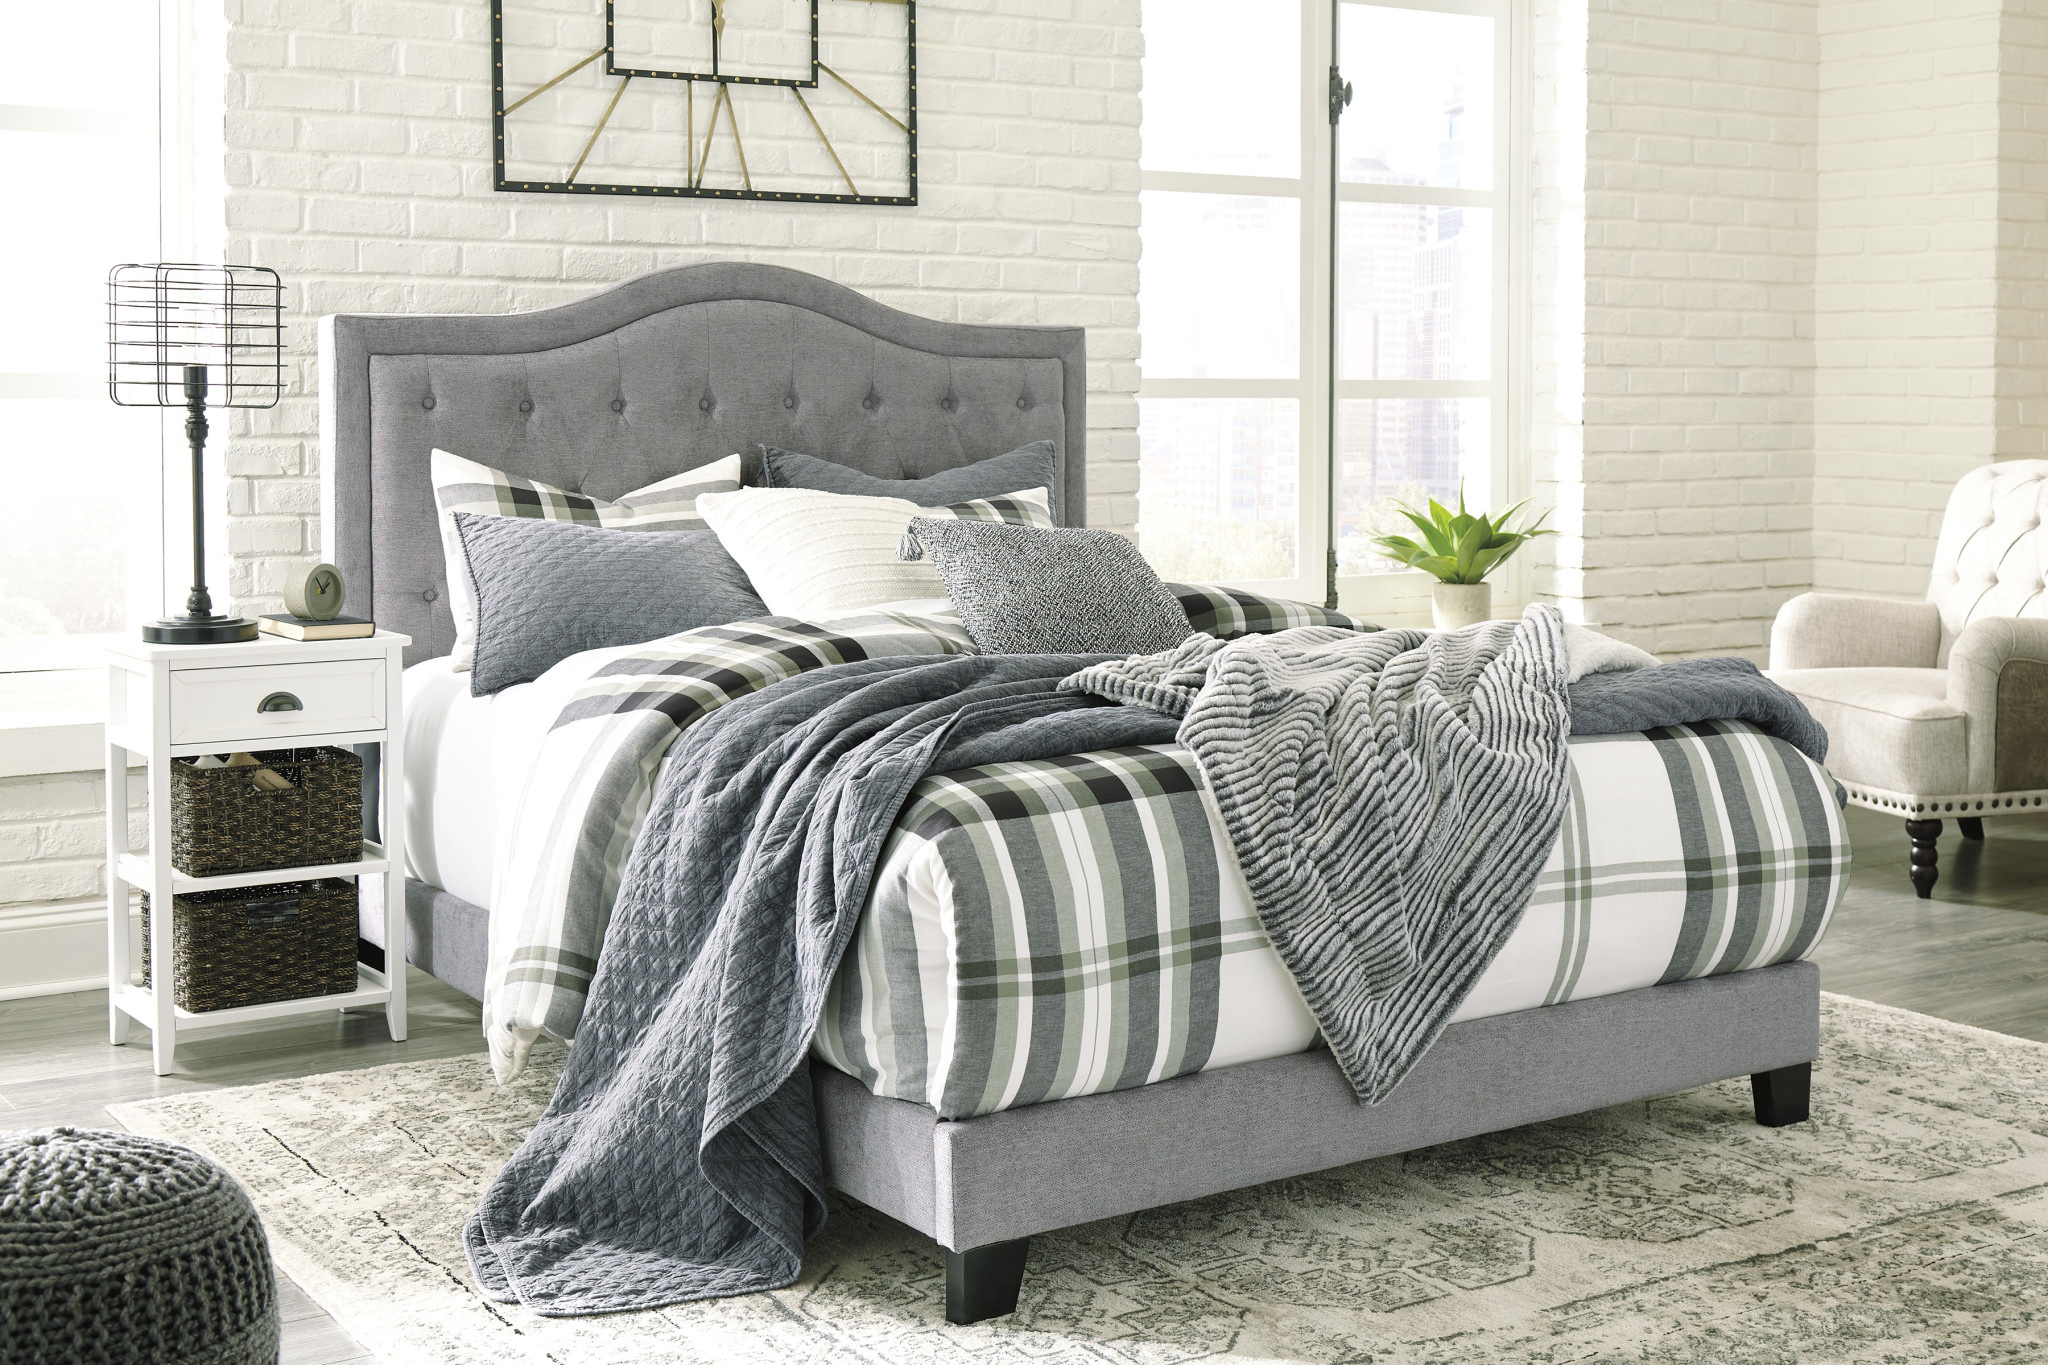 Benchcraft KING Upholstered Gray Bedframe- Jerary- B090-382